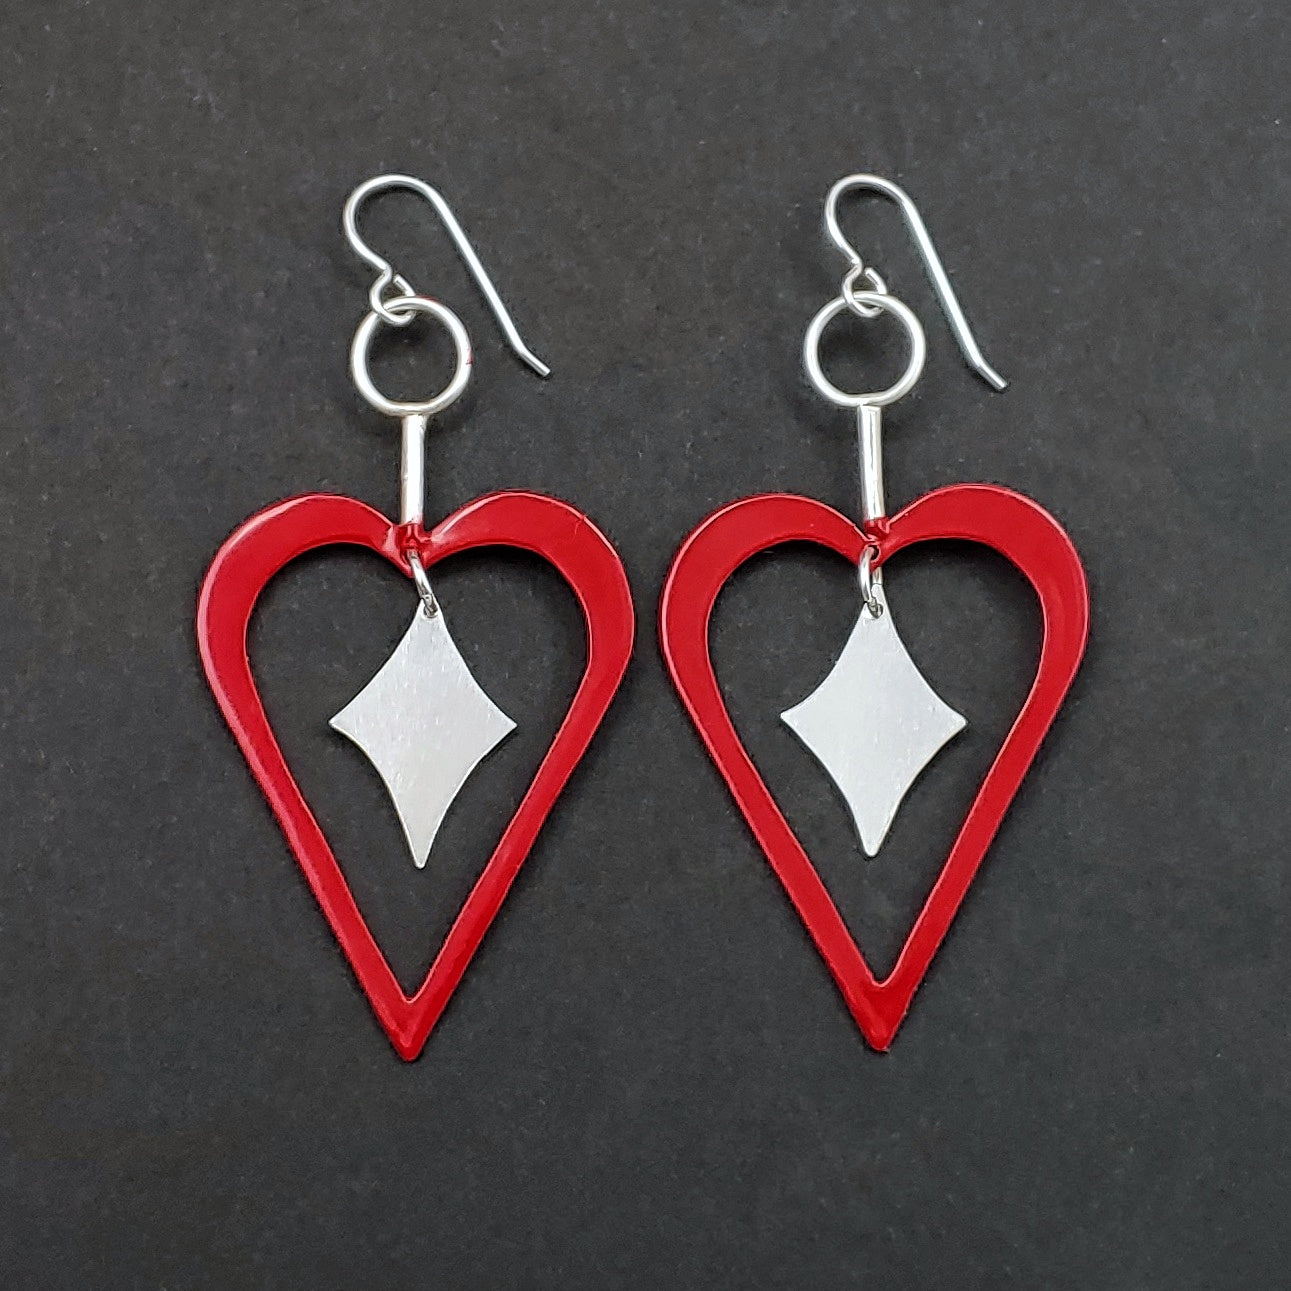 Red heart shaped earrings with sterling silver retro diamonds in the middle